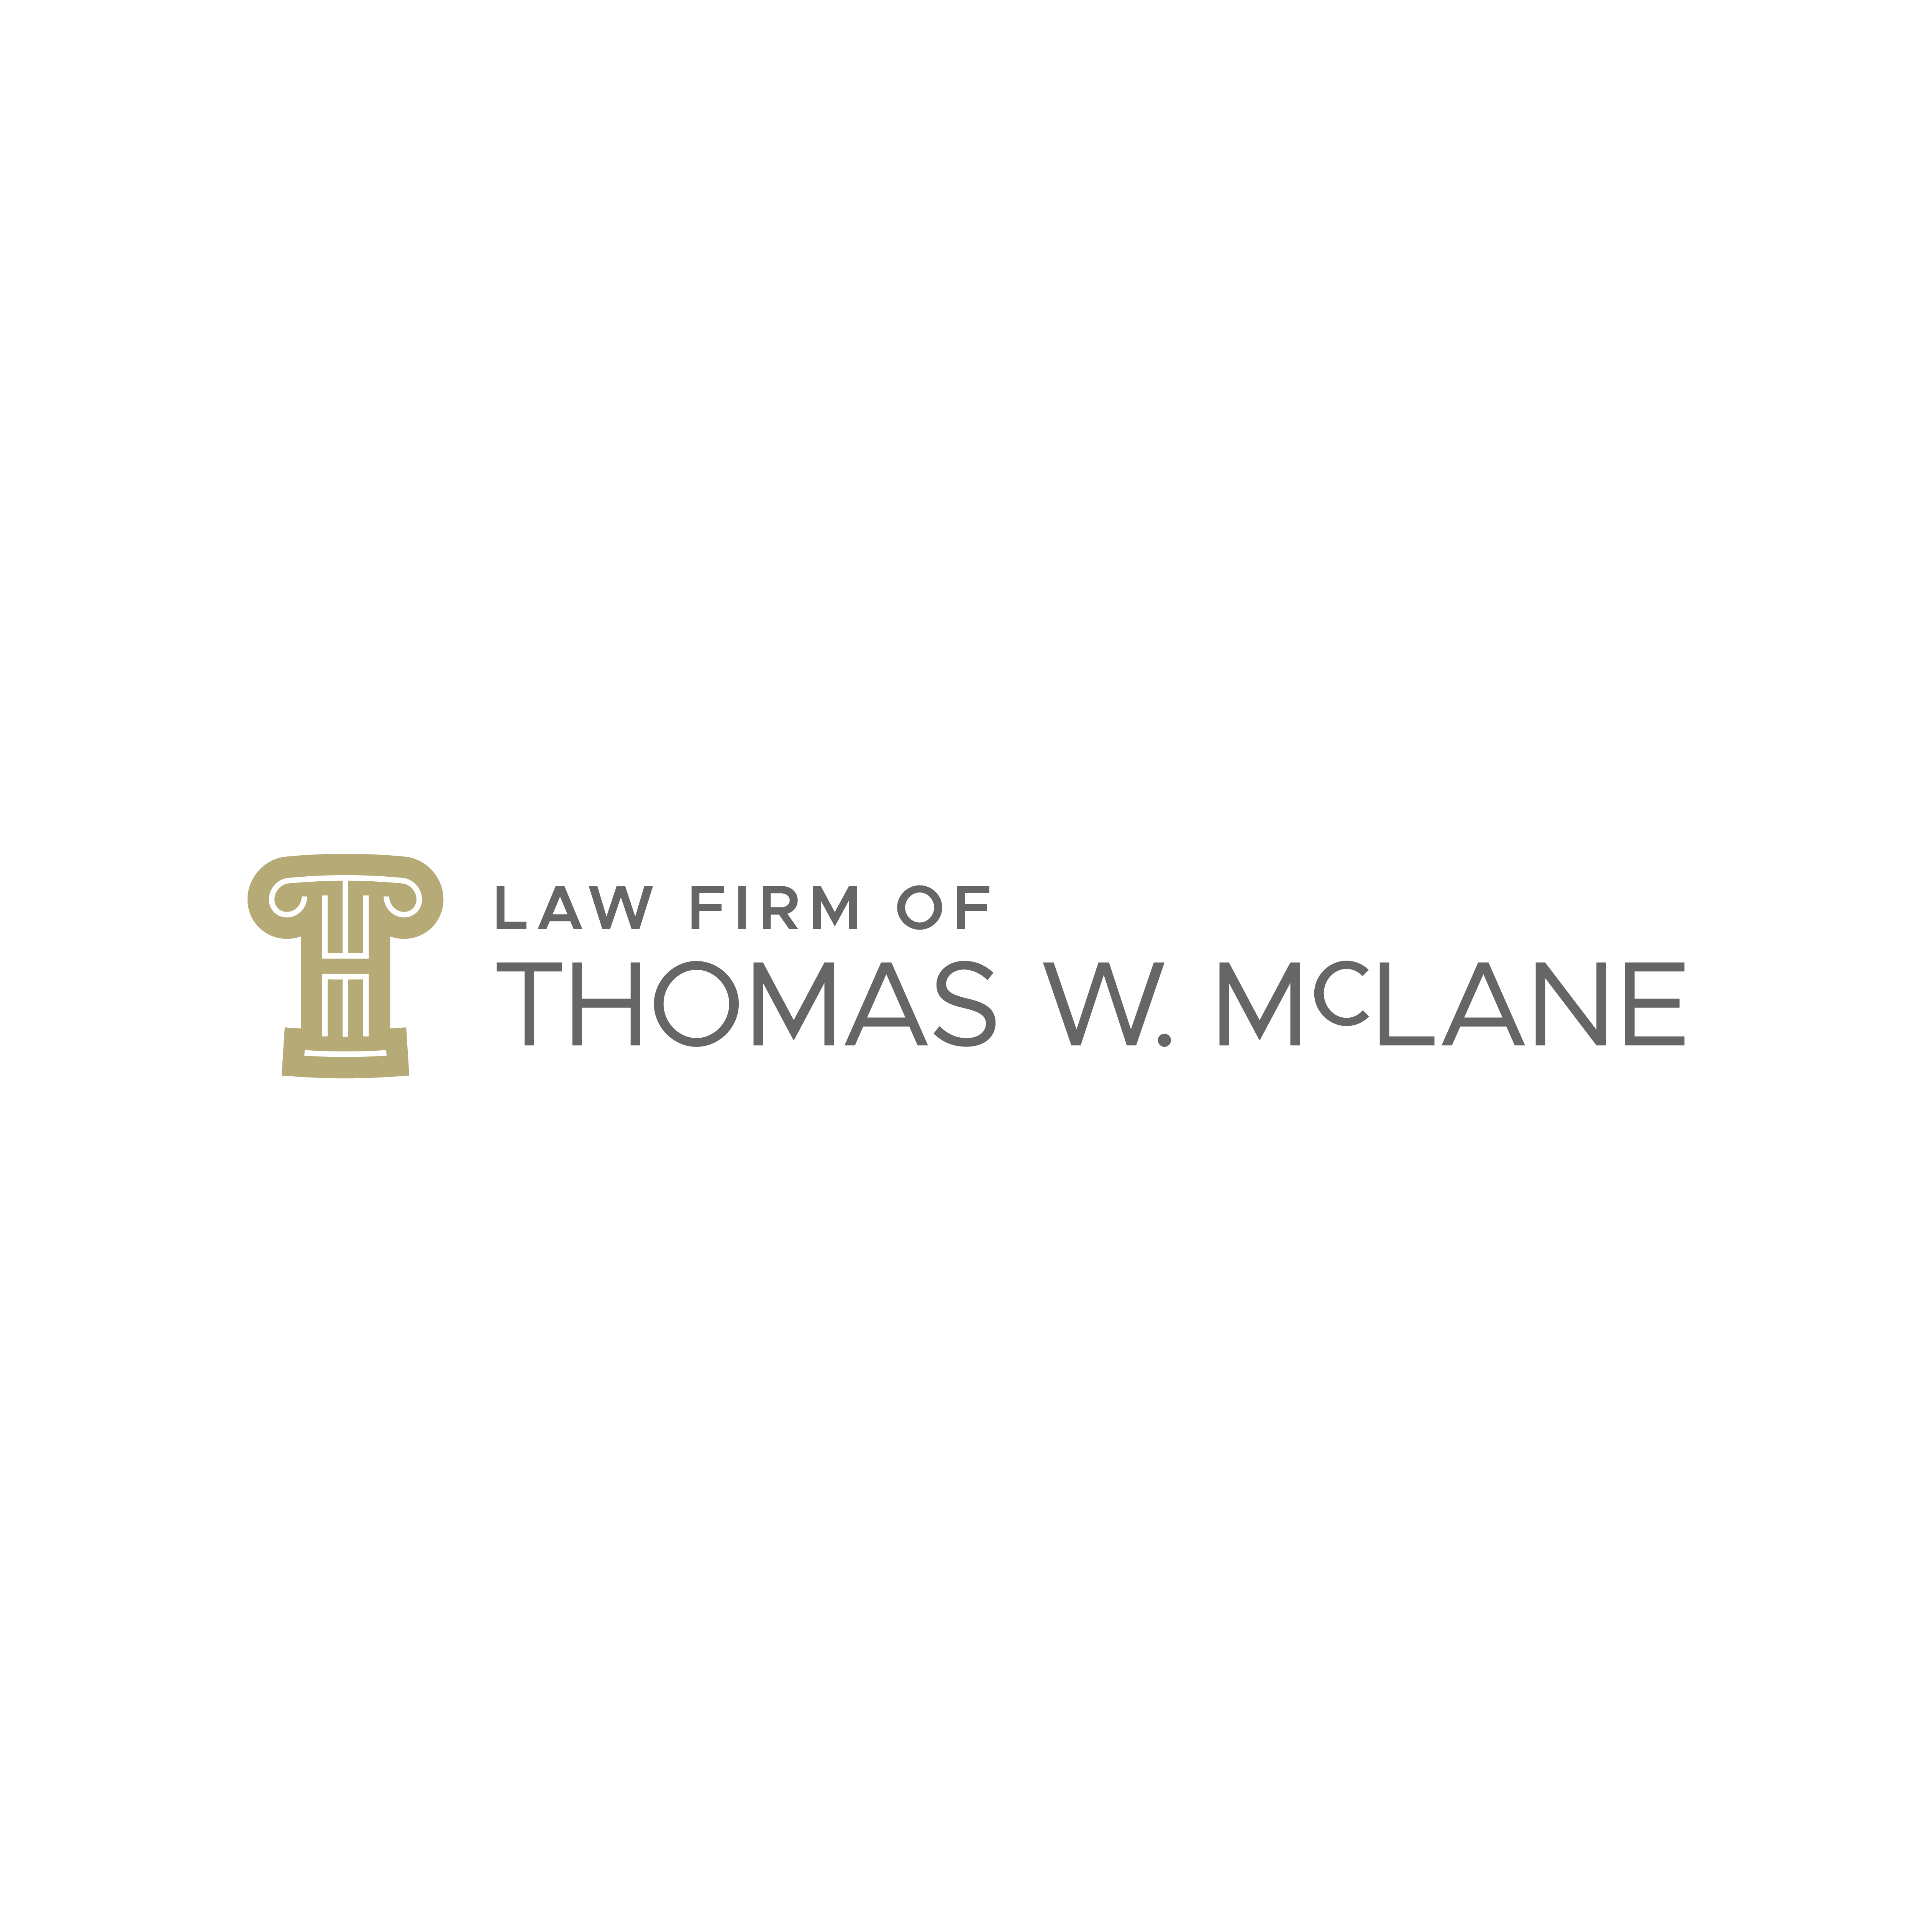 Thomas W. McLane Law - Logo Design